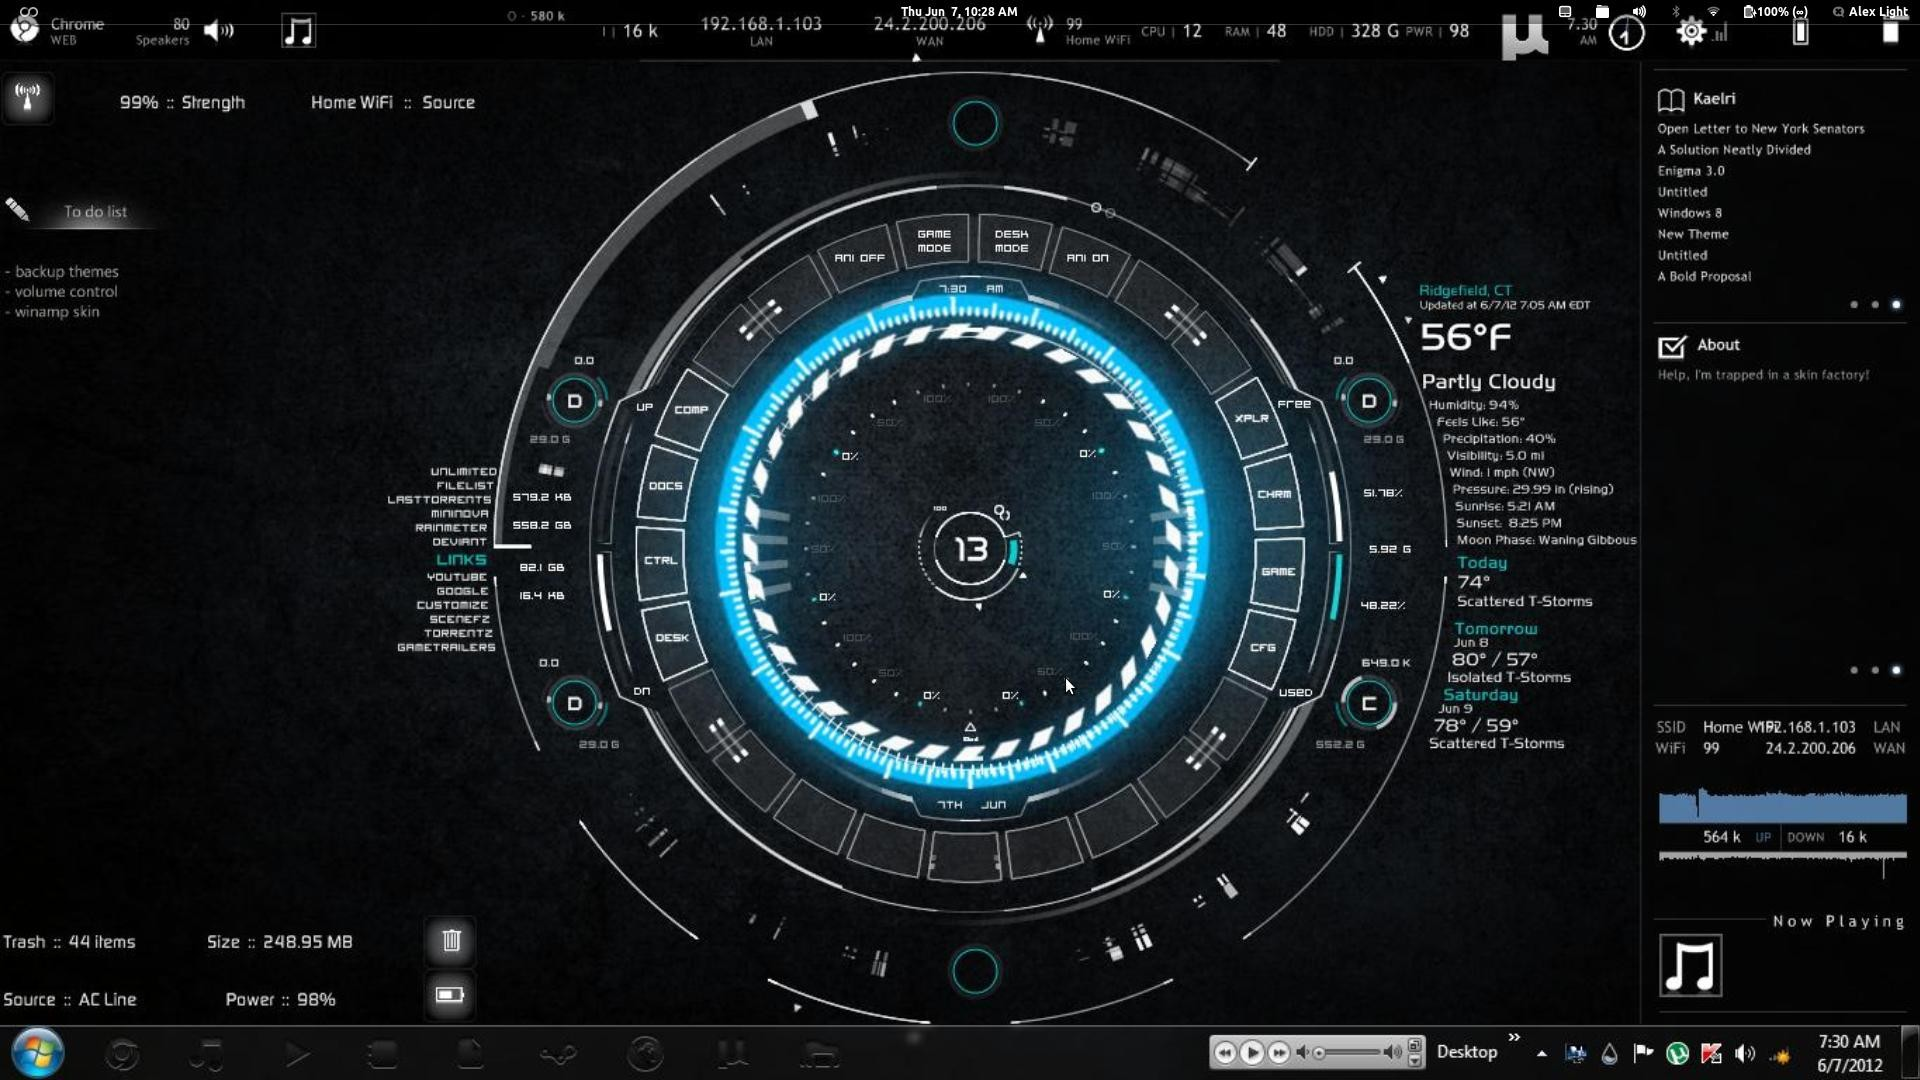 1920x1080 Iron Man Jarvis Wallpaper Hd Iron man hud w